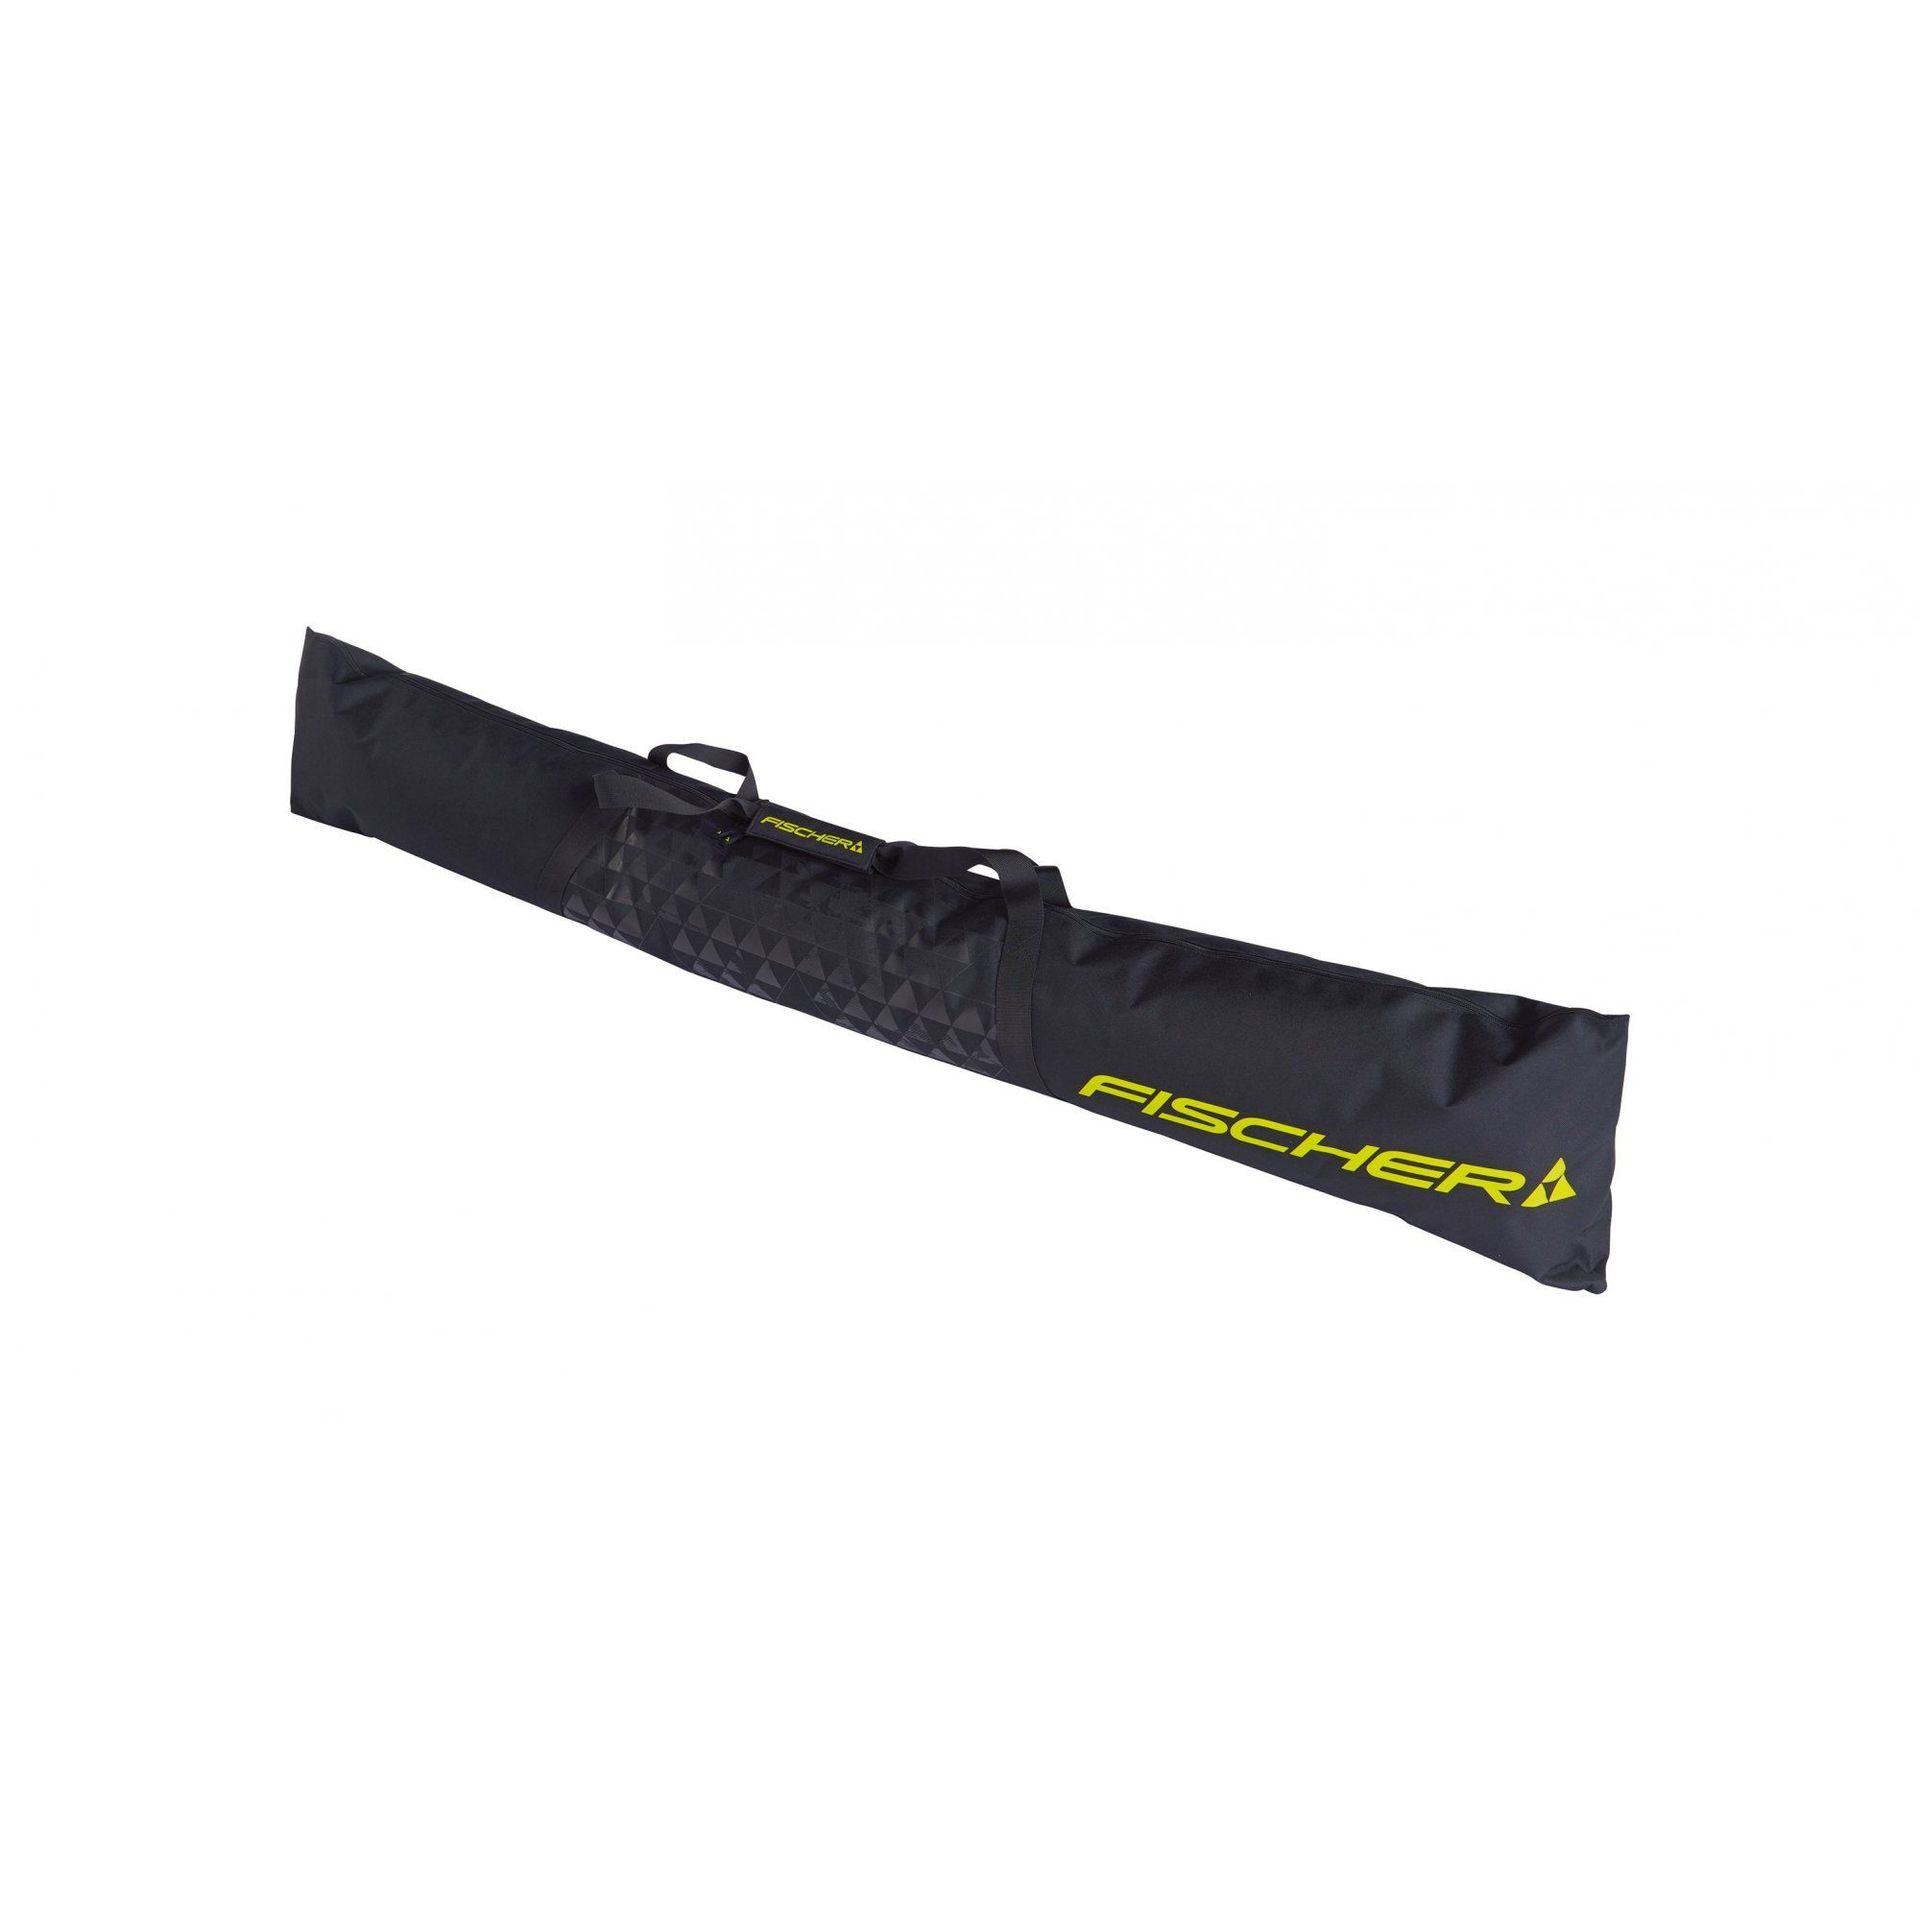 POKROWIEC NA NARTY FISCHER SKICASE 1P ALPINE ECO 160 BLACK|YELLOW Z10919